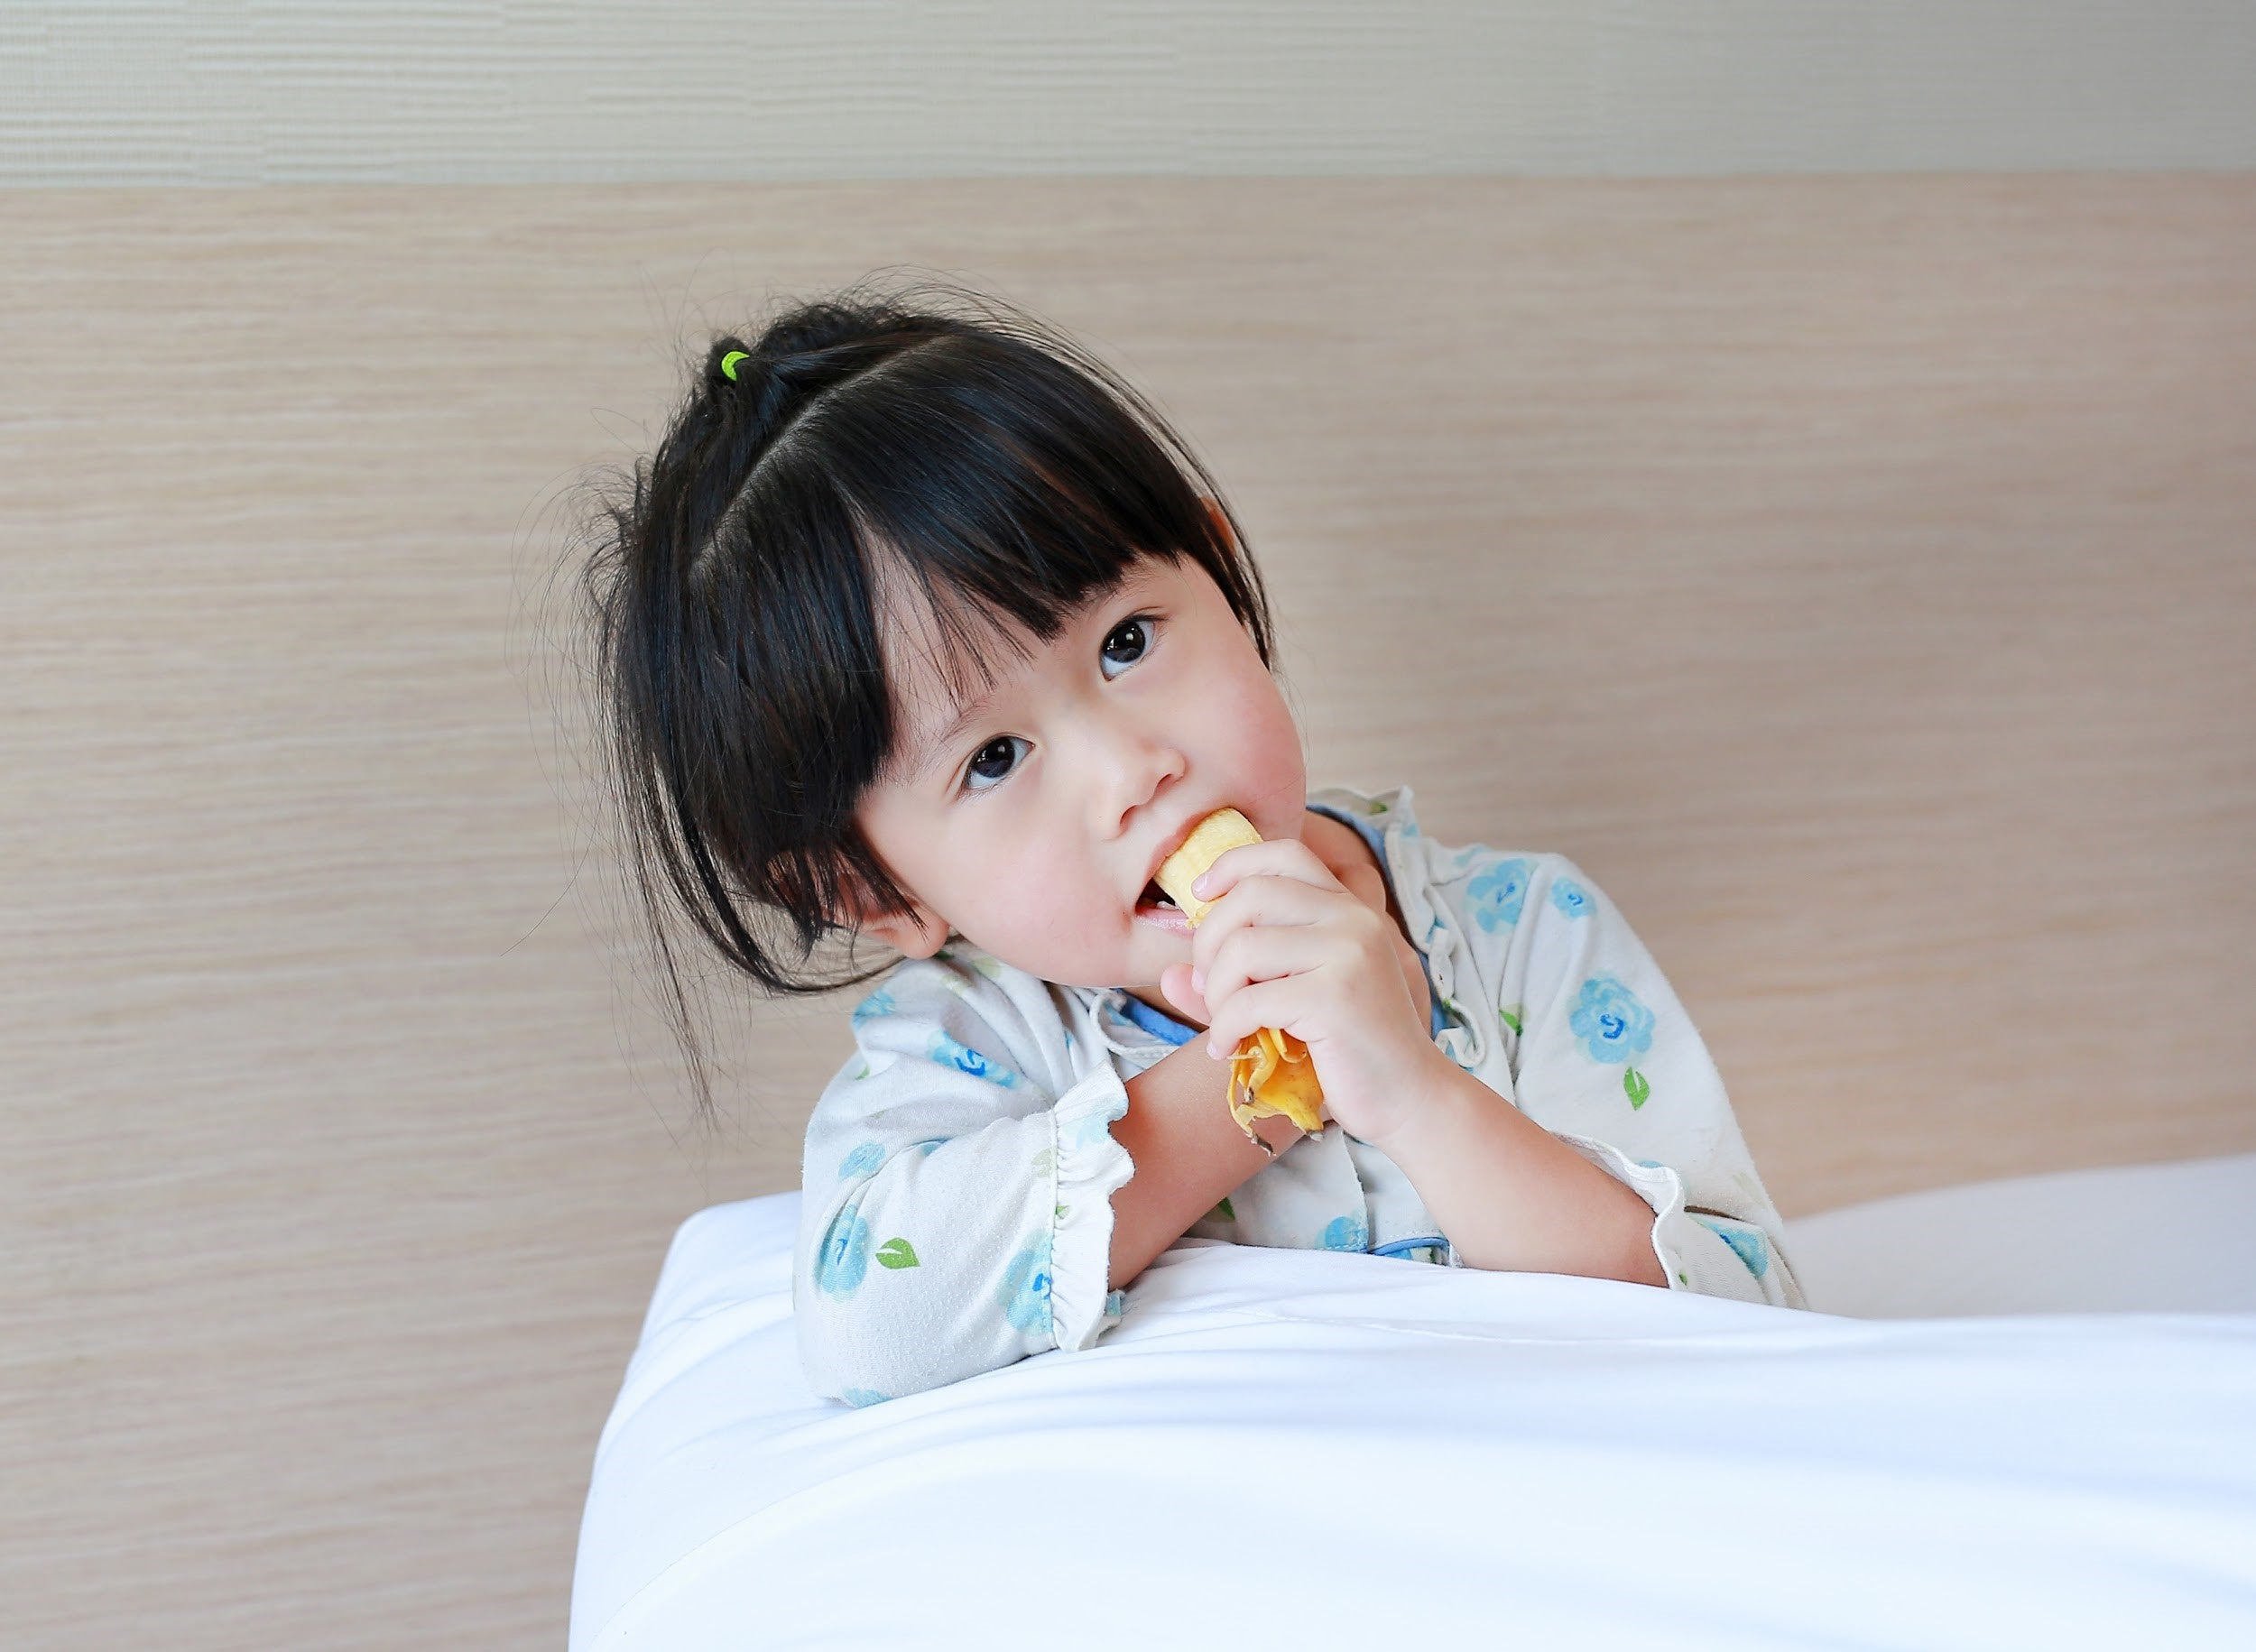 best foods for sick kids by illness - bananas for constipation